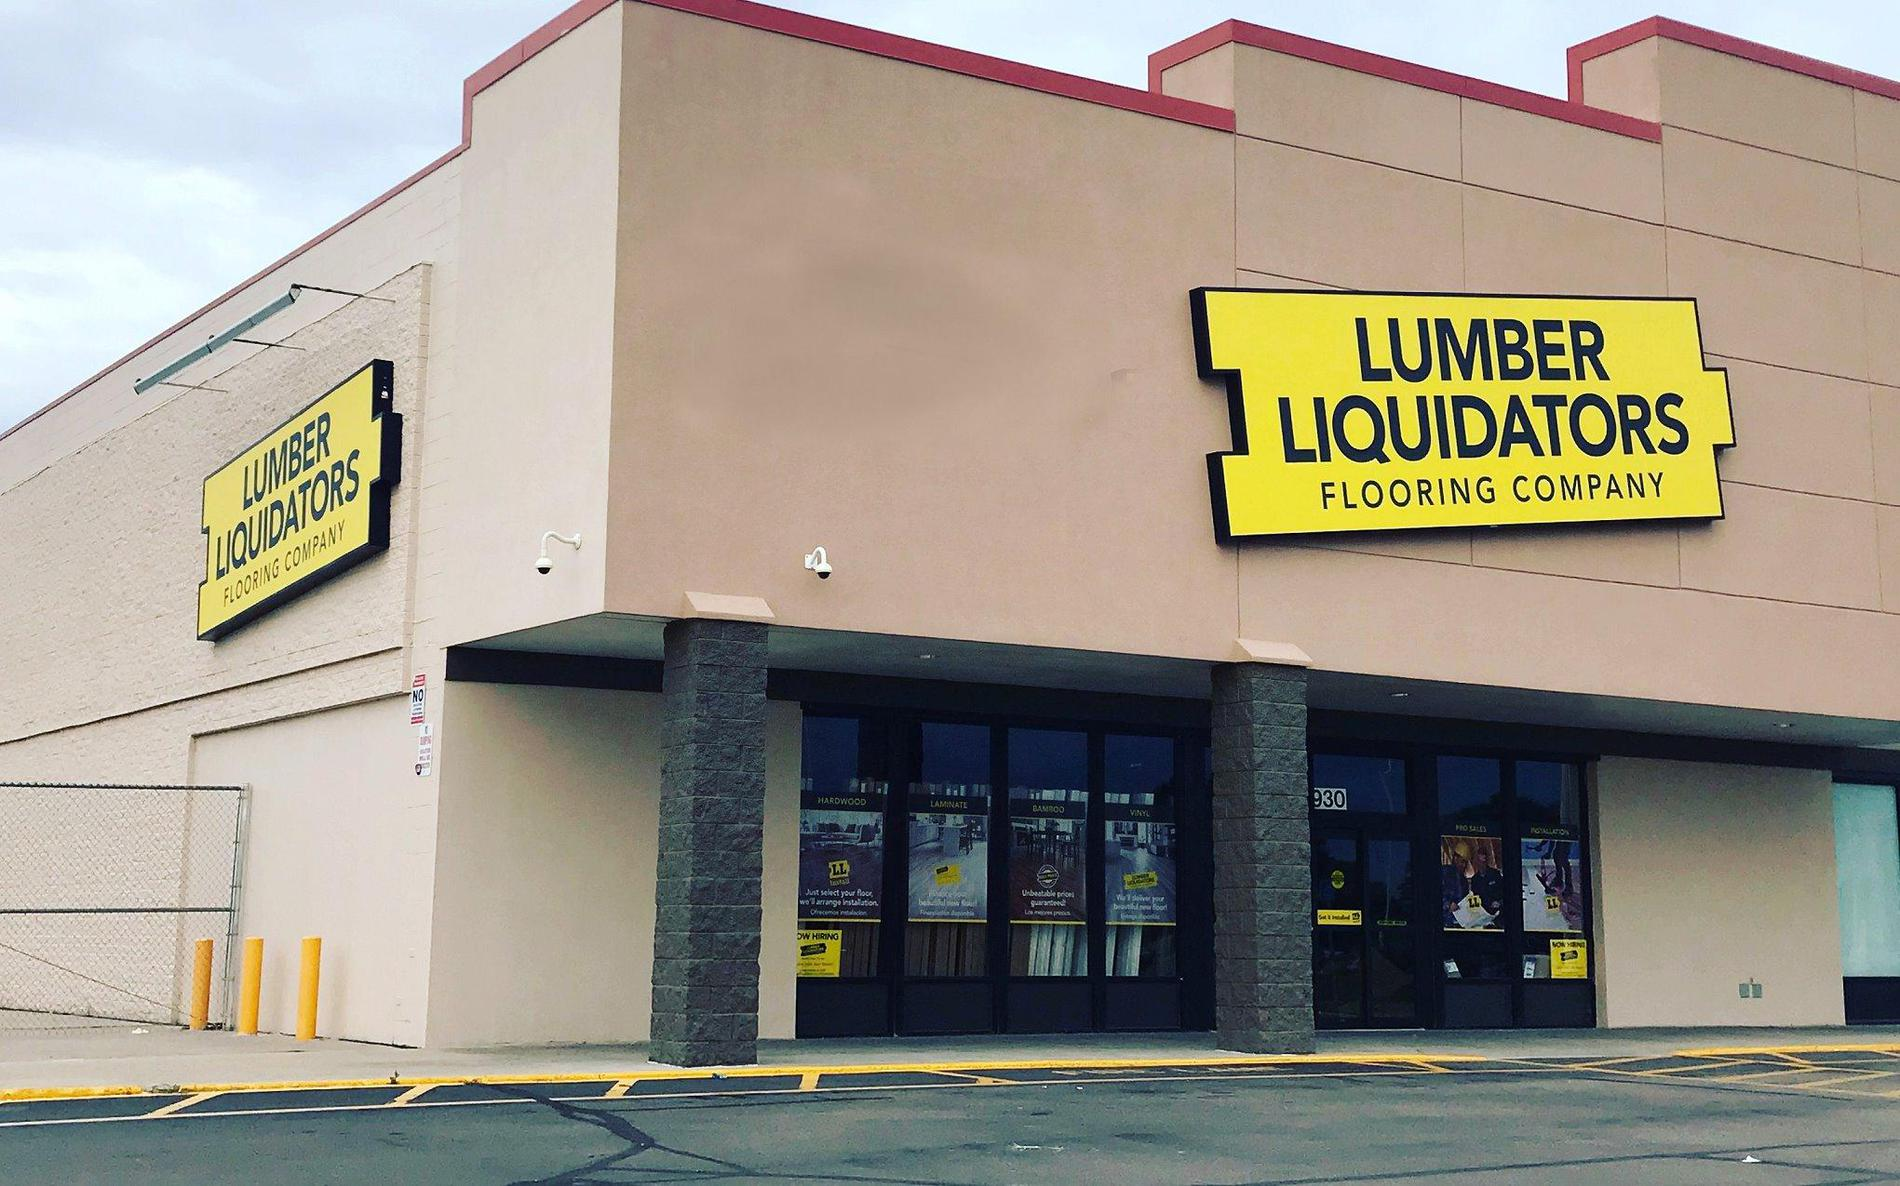 Lumber Liquidators Flooring #1408 Thornton | 930 East 104th Avenue | Store Front